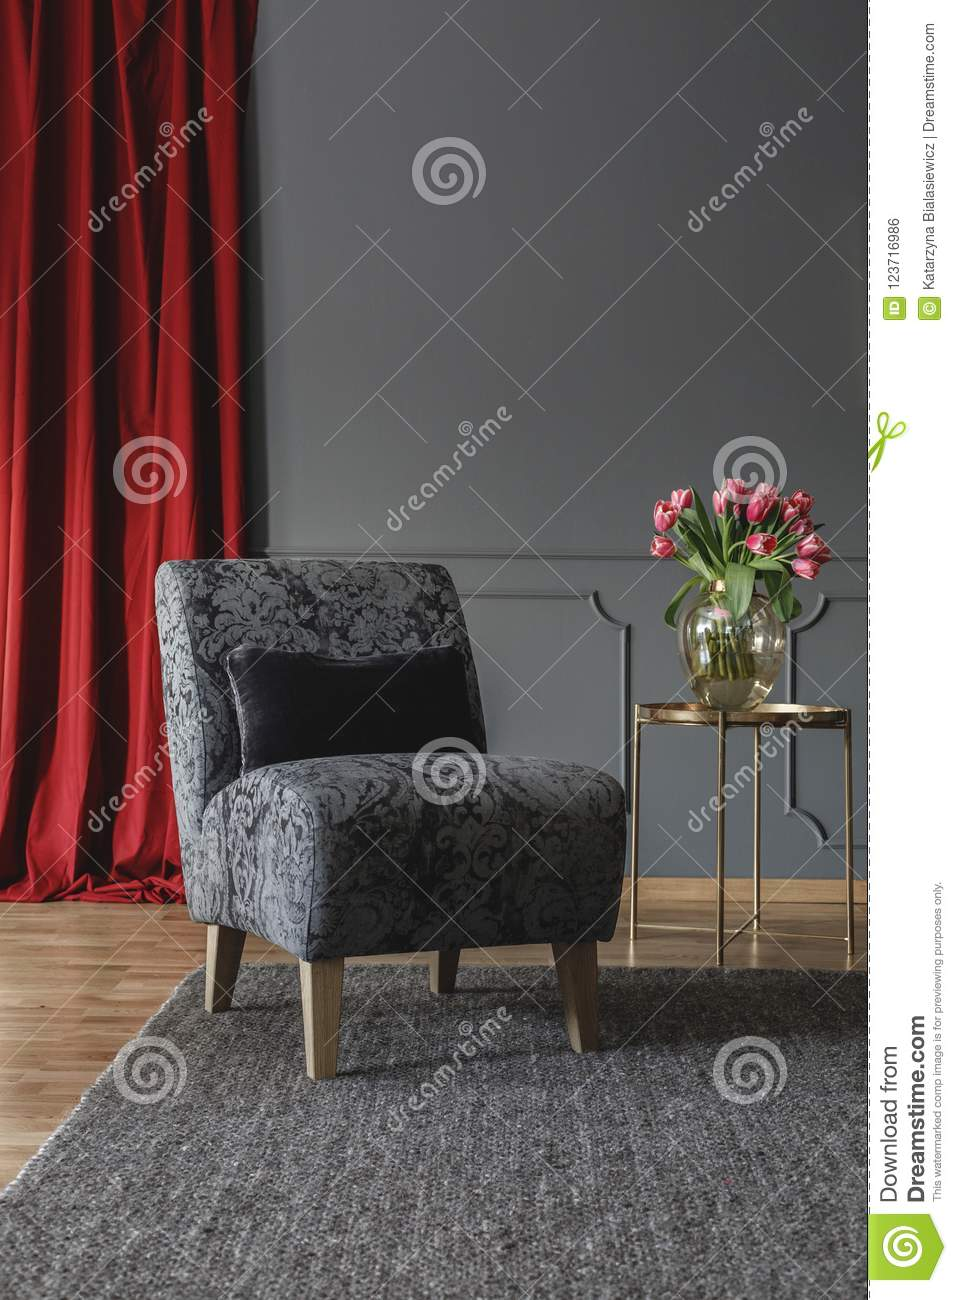 Grey Floral Chair With Black Cushion Standing On Dark Carpet In